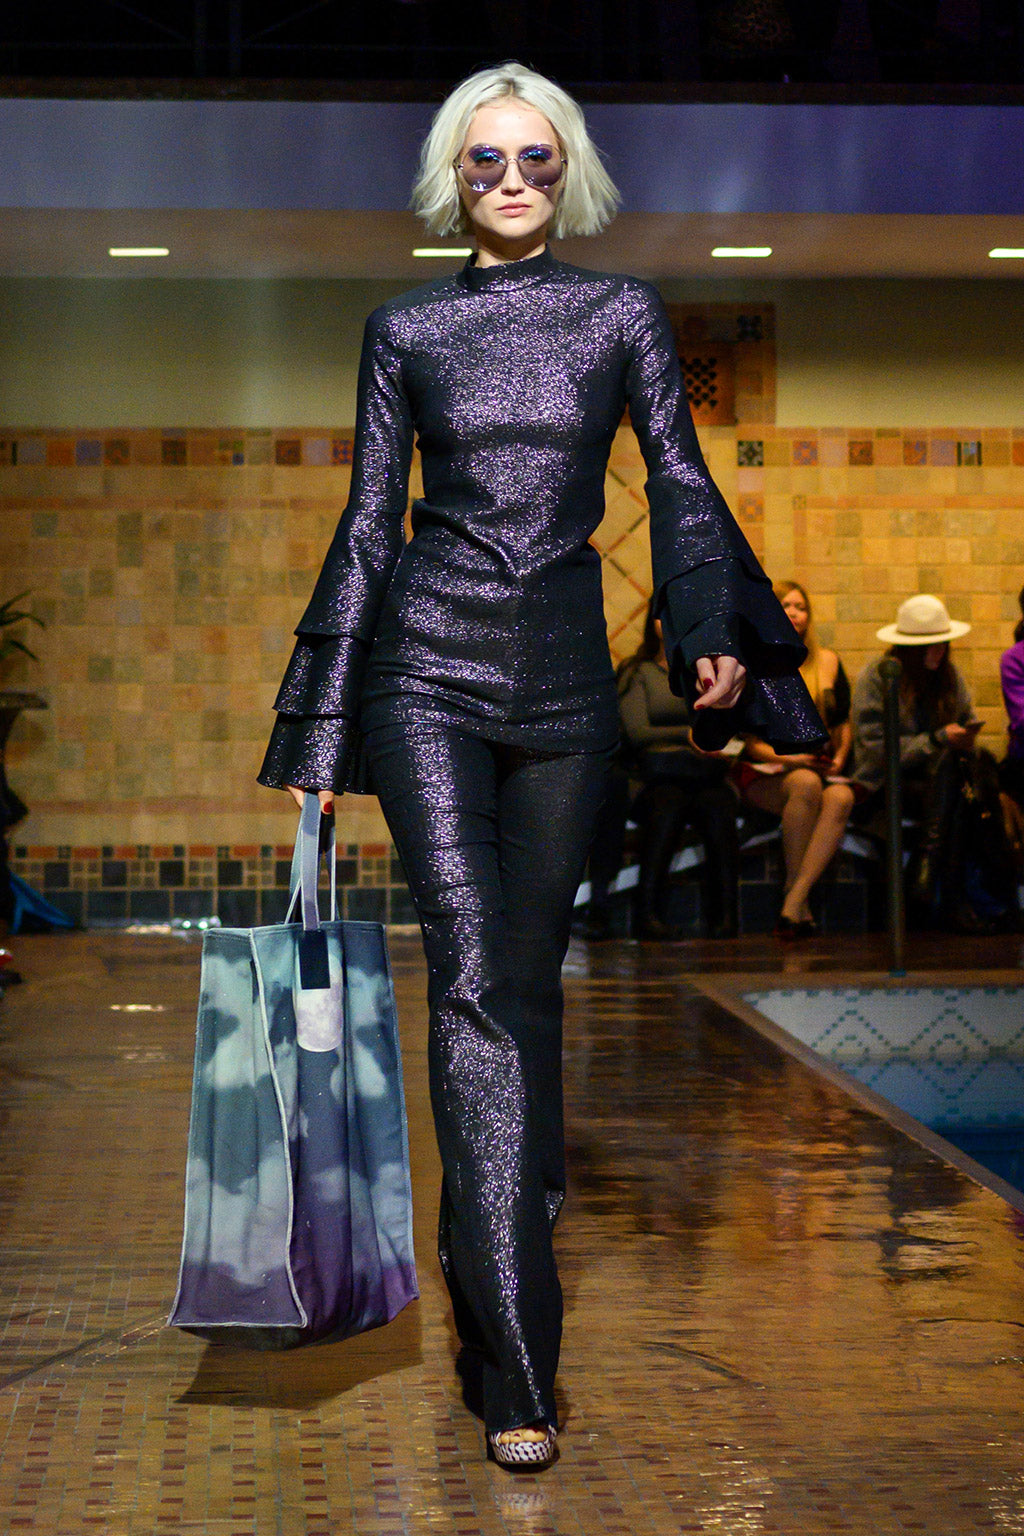 Cynthia Rowley Fall 2019 look 13 featuring a dark purple metallic top with long bell sleeves and a flare pant in the same print